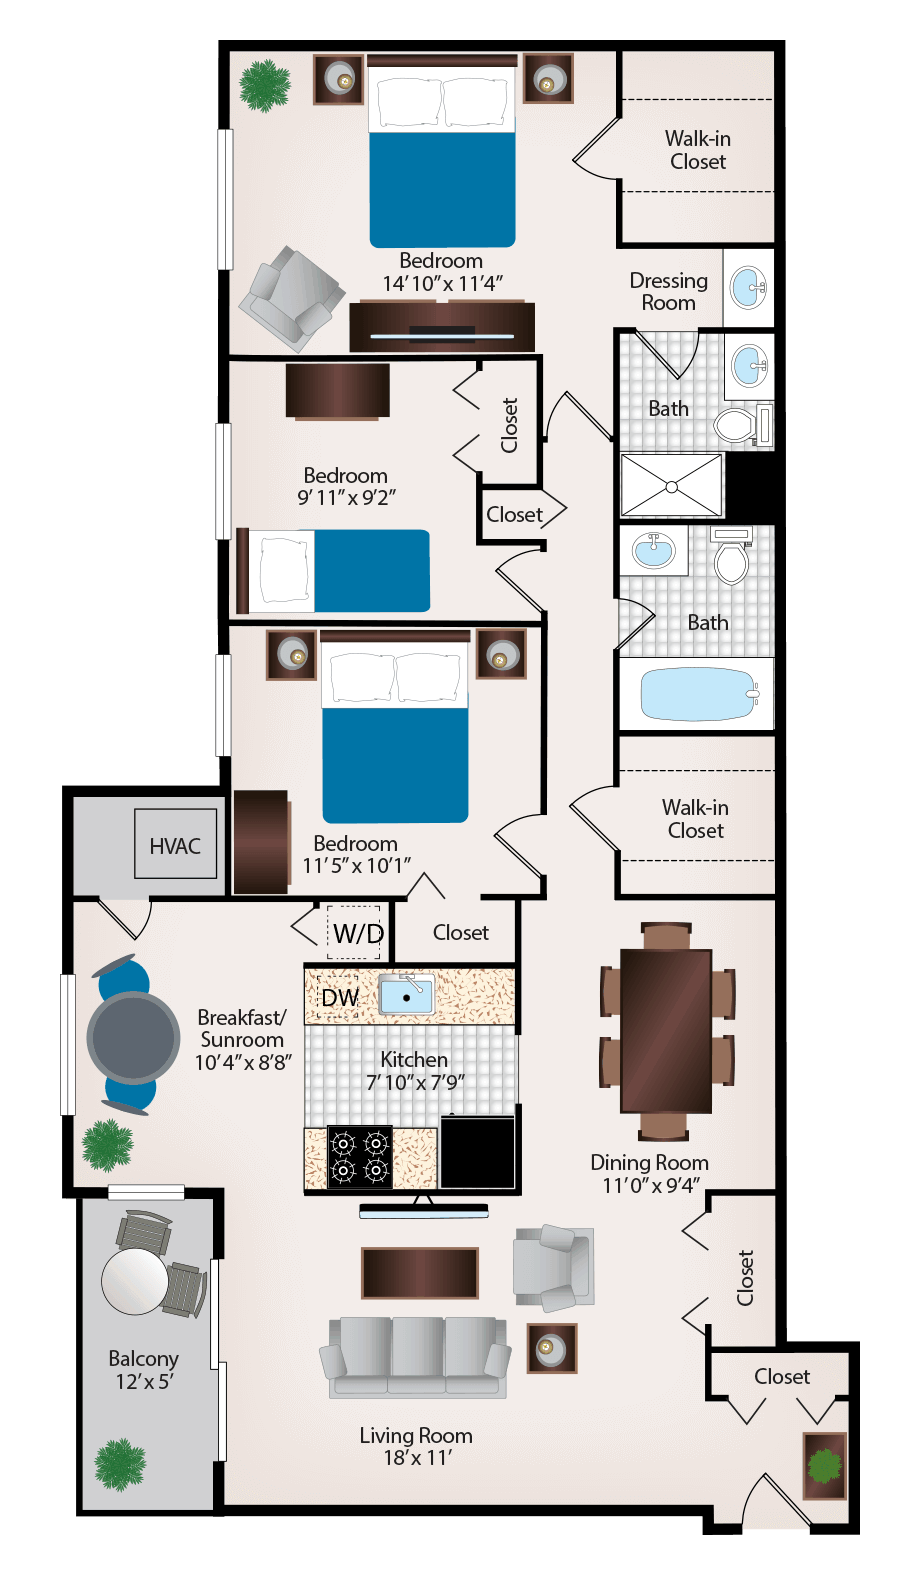 3 Bedroom 2 Bathroom Apartment Near Silver Spring Three Bedroom Apartments Floor Plans Transparent Png Download 5398083 Vippng